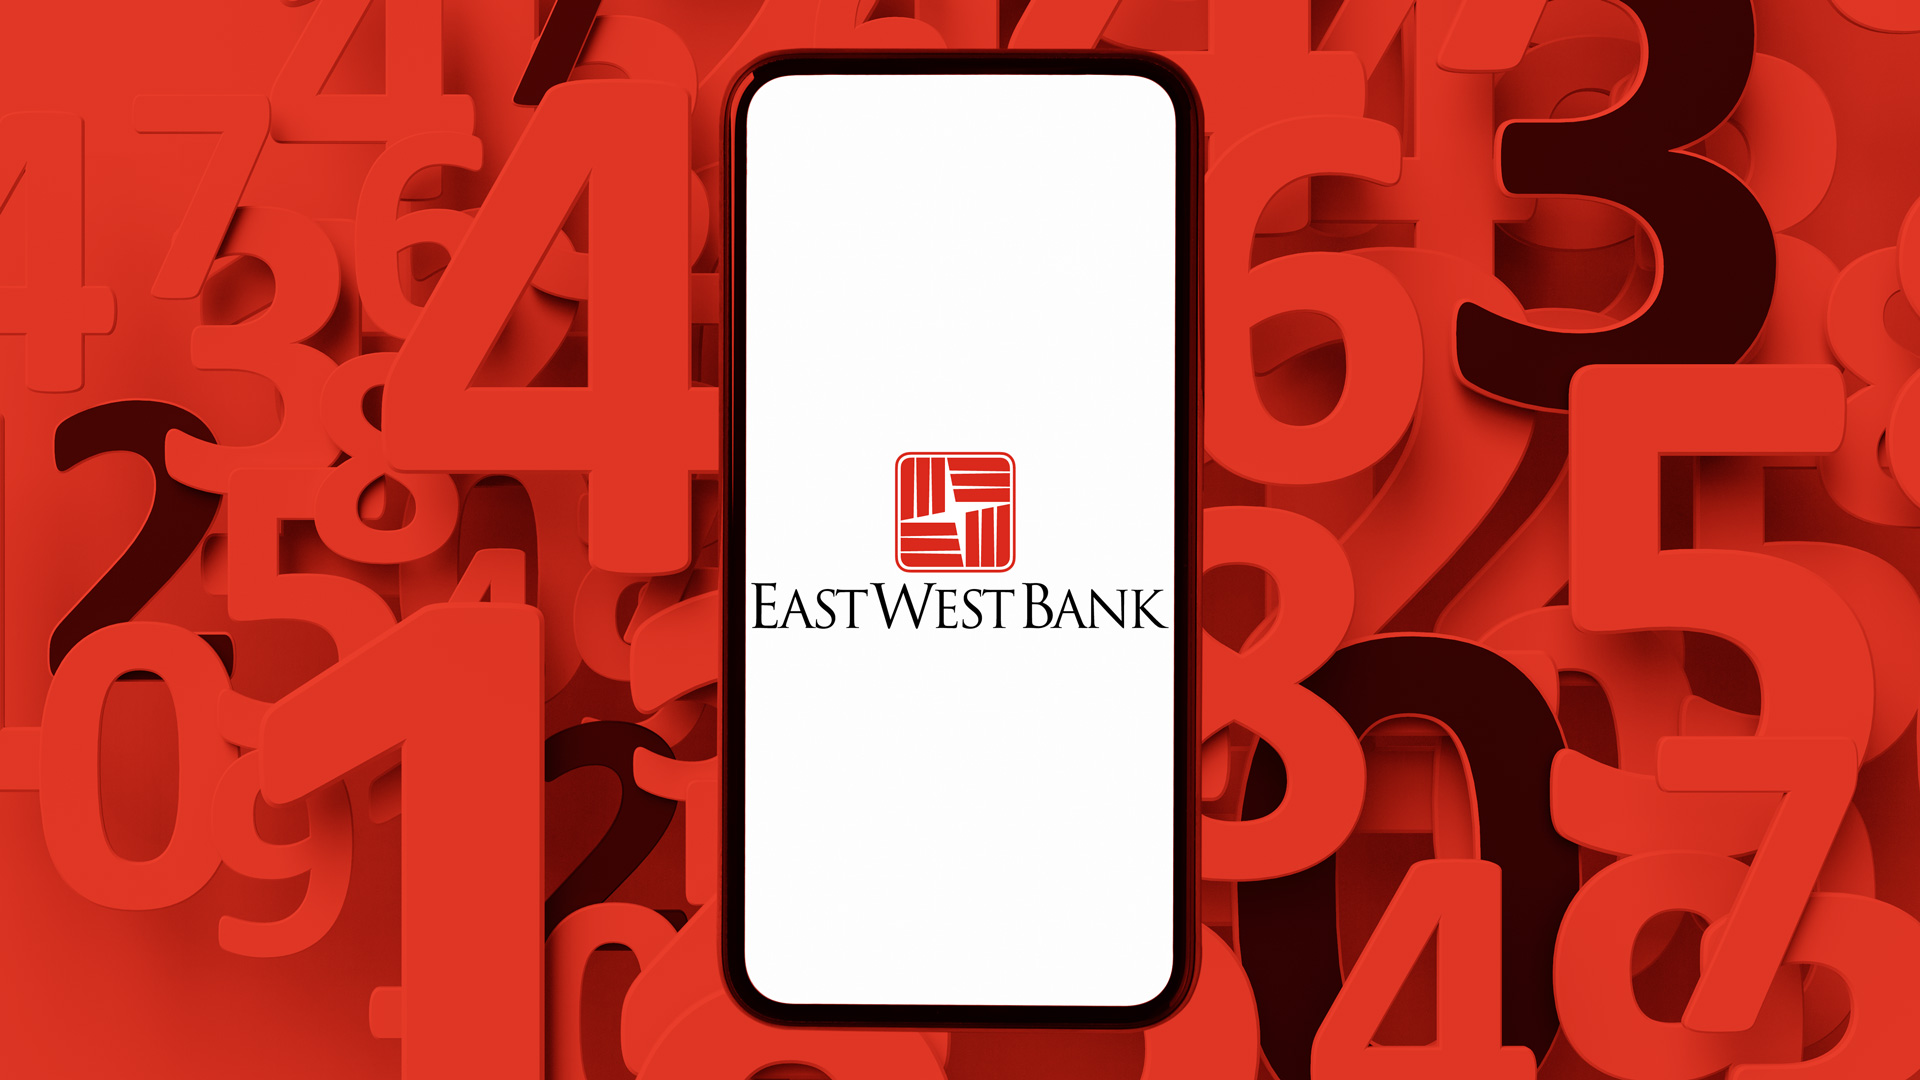 East West bank routing